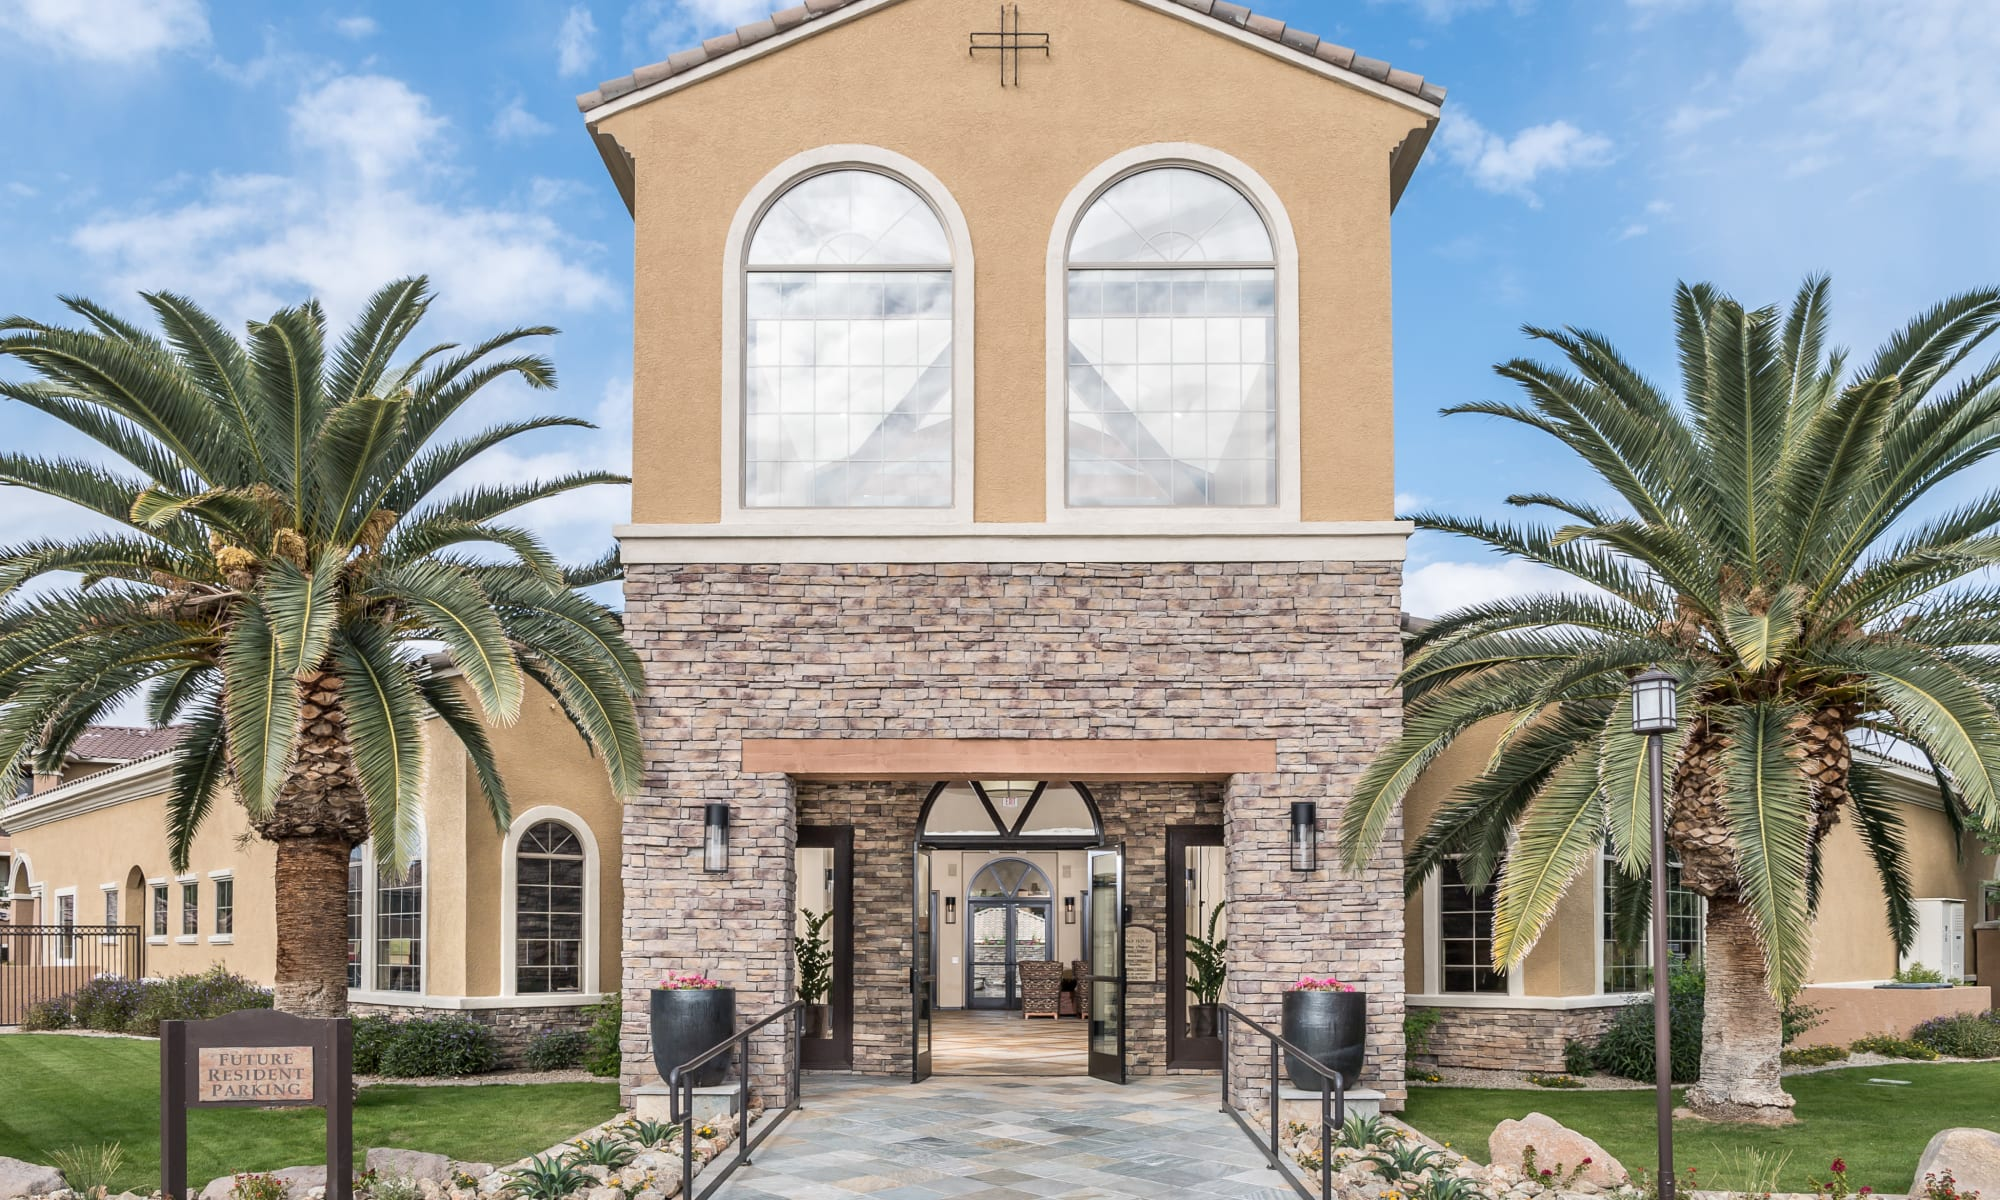 Apartments at Stone Oaks in Chandler, Arizona